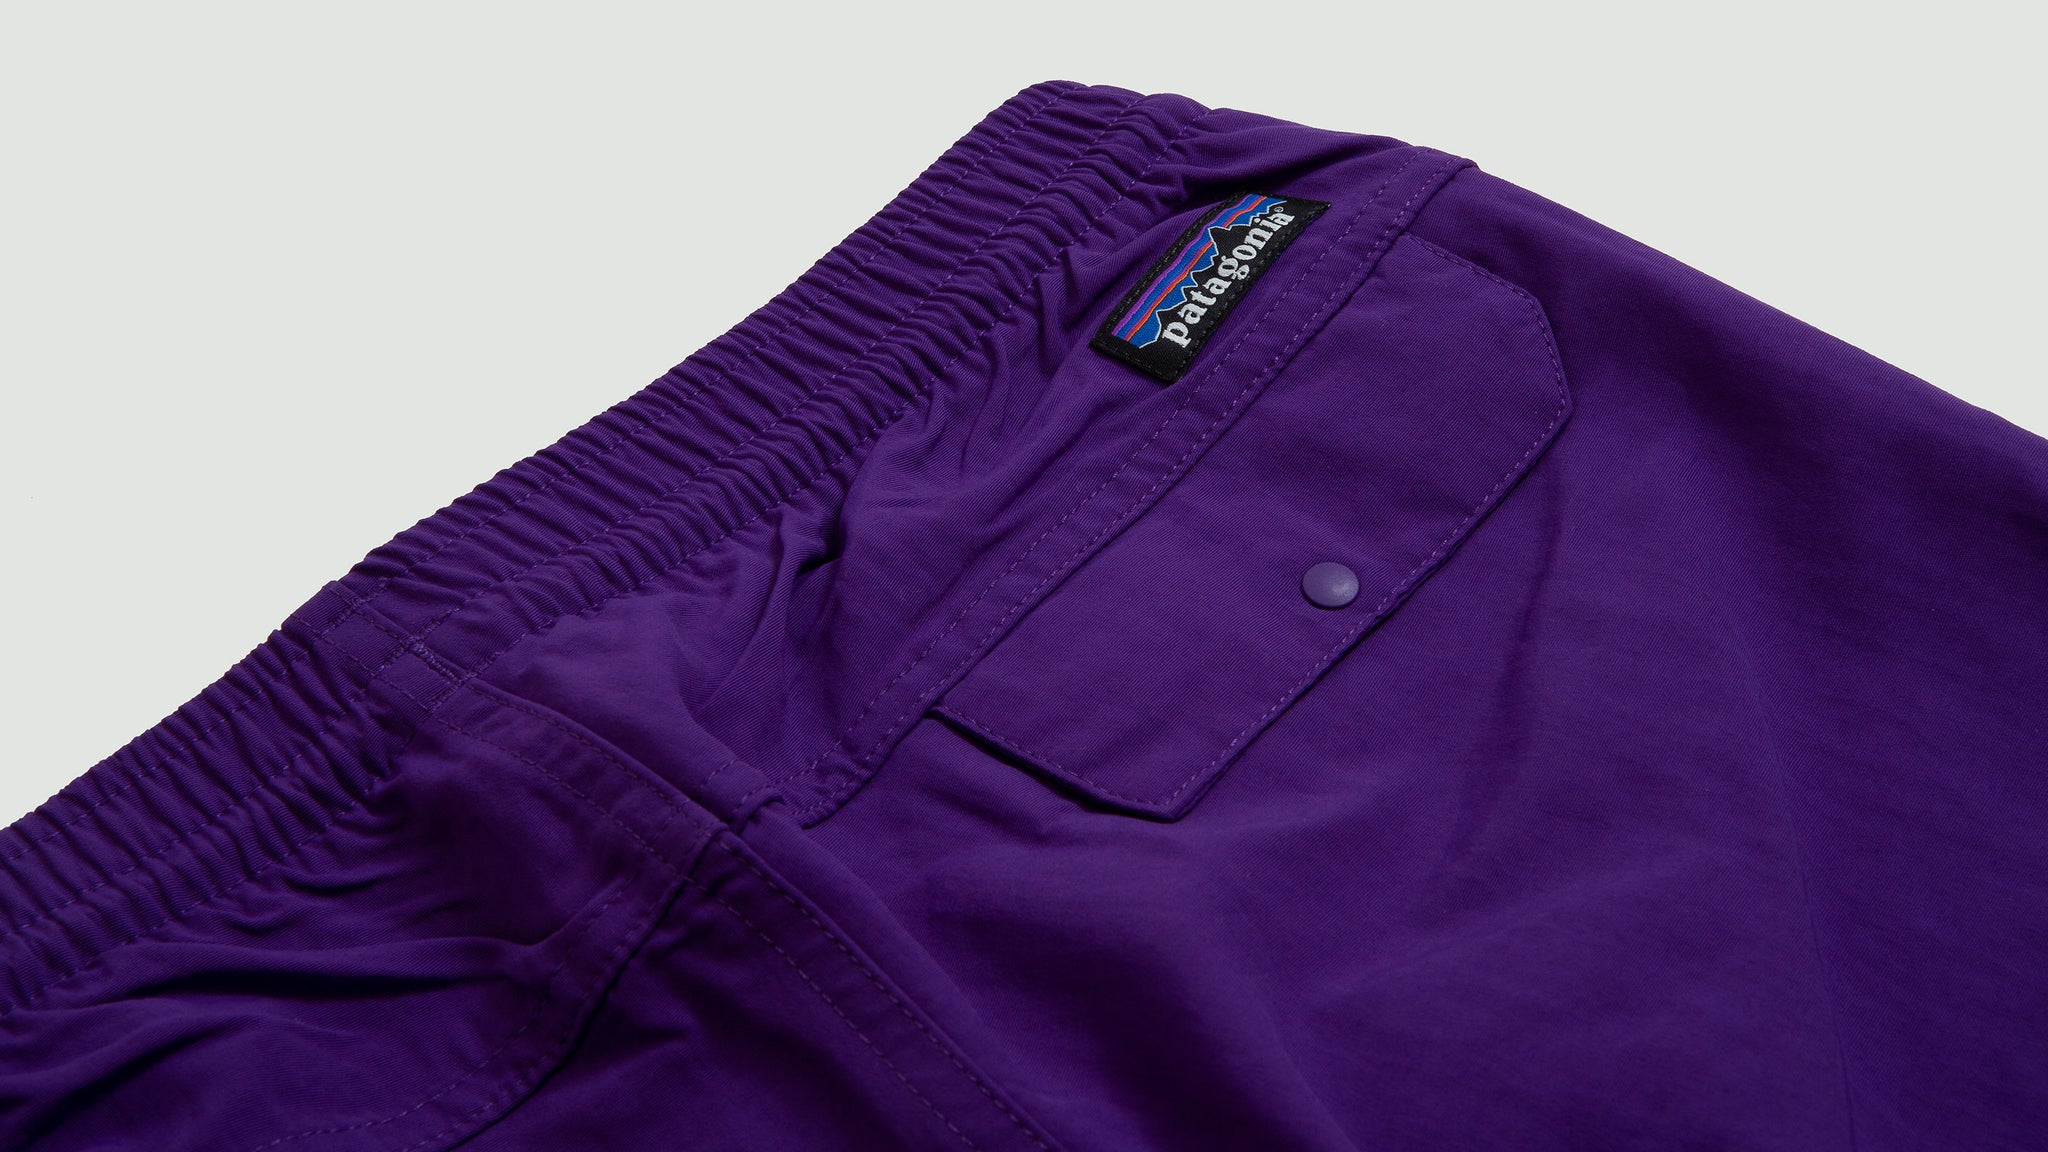 Patagonia. Baggies pants purple